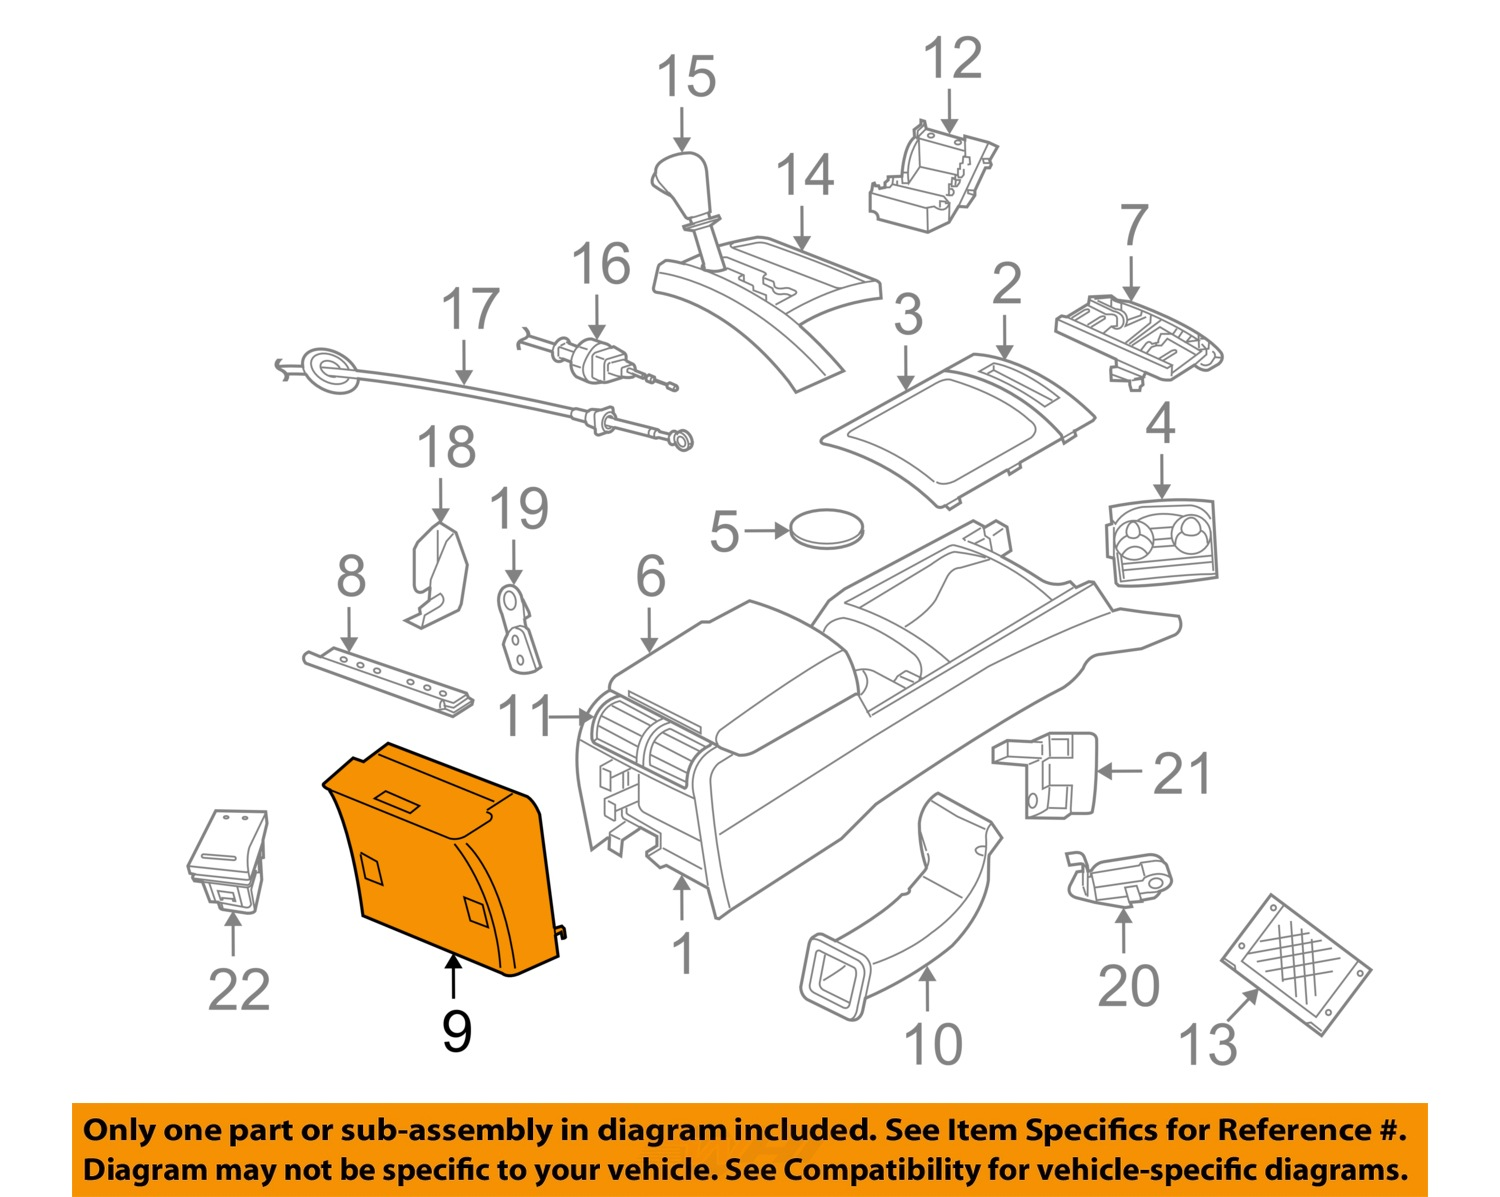 D A Ec Dd A B B Jeep Grand Cherokee Jeeps moreover Electrical  ponent Locator likewise Wa Full together with D Oem Fit Android Head Unit Radio Dvd Navigation Upgrade Installation Questions Answers Jbl Radio Wiring Connections also B C Ffc Ade Dcecb C Ee Jeeps Tractors. on jeep grand cherokee center console parts diagram